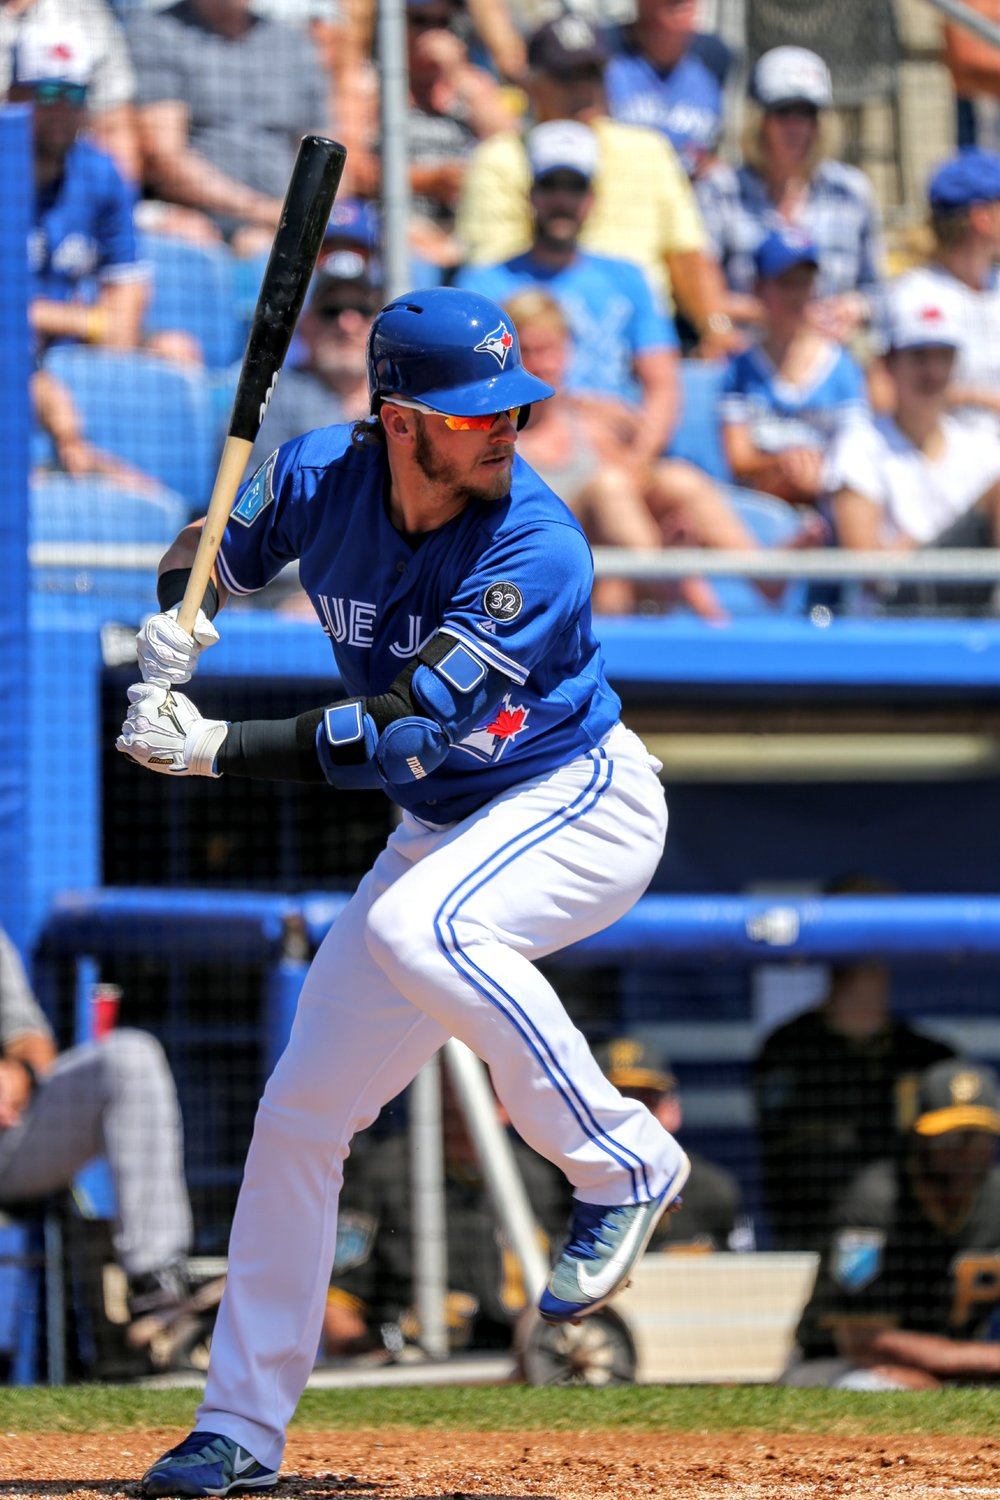 Josh Donaldson batted third and went 0-for-2.